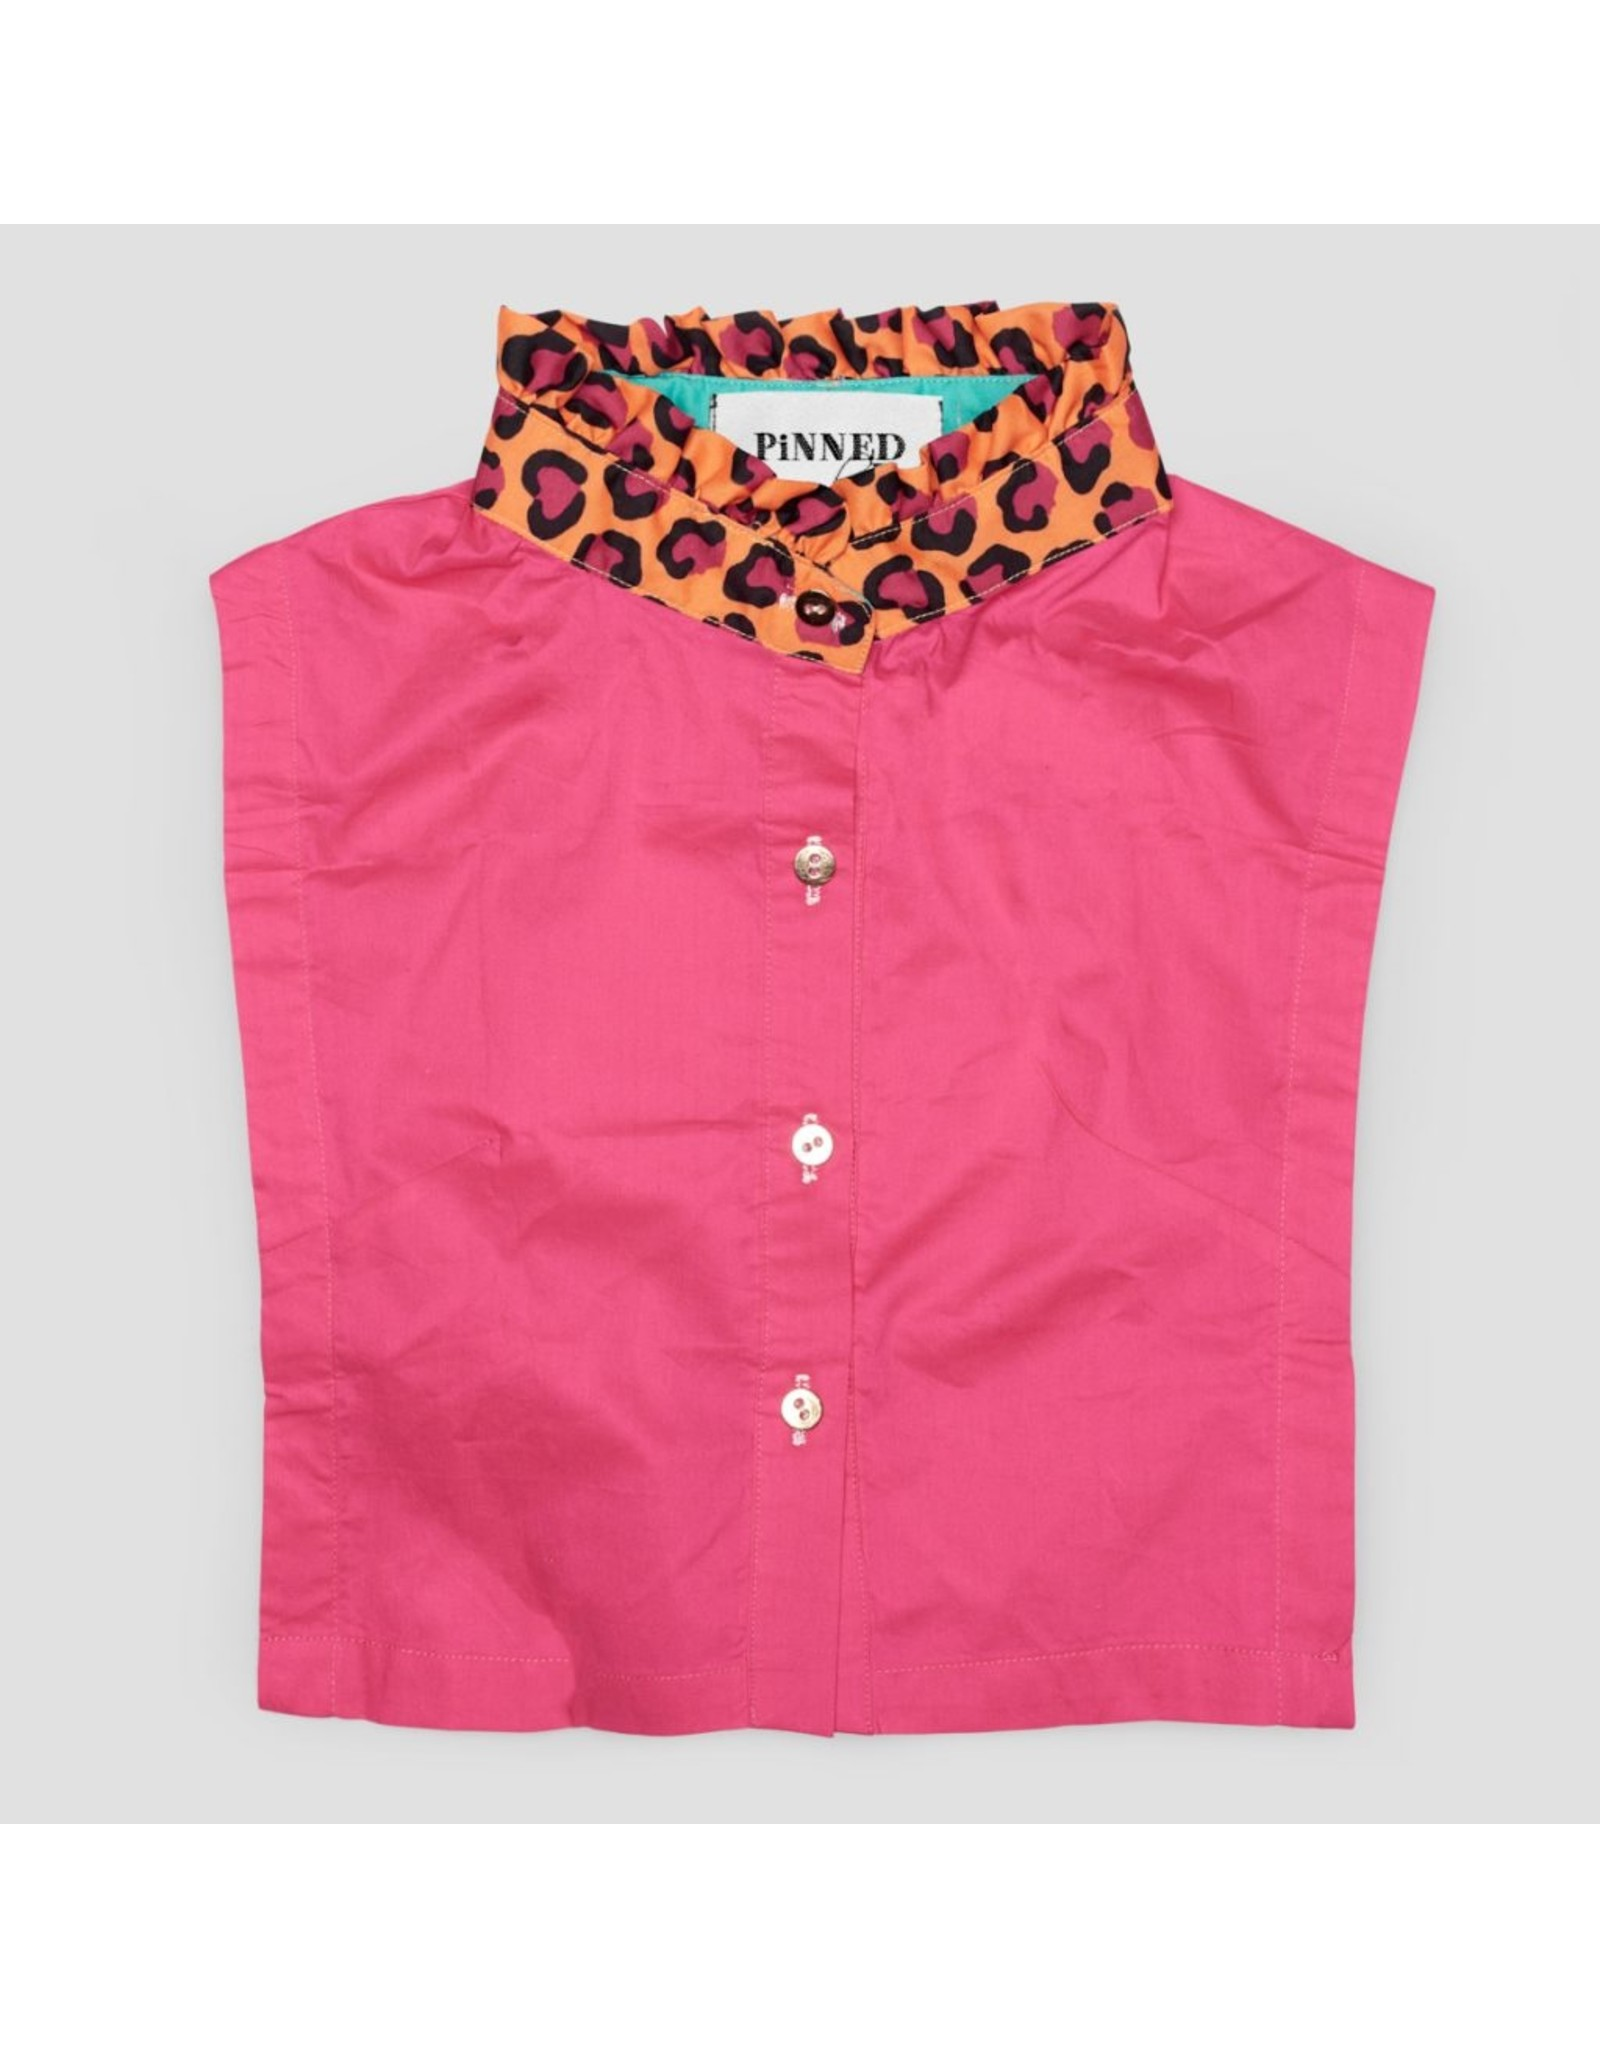 Pinned by K Pinned by K Collar Pinu Leopard Maat S/M